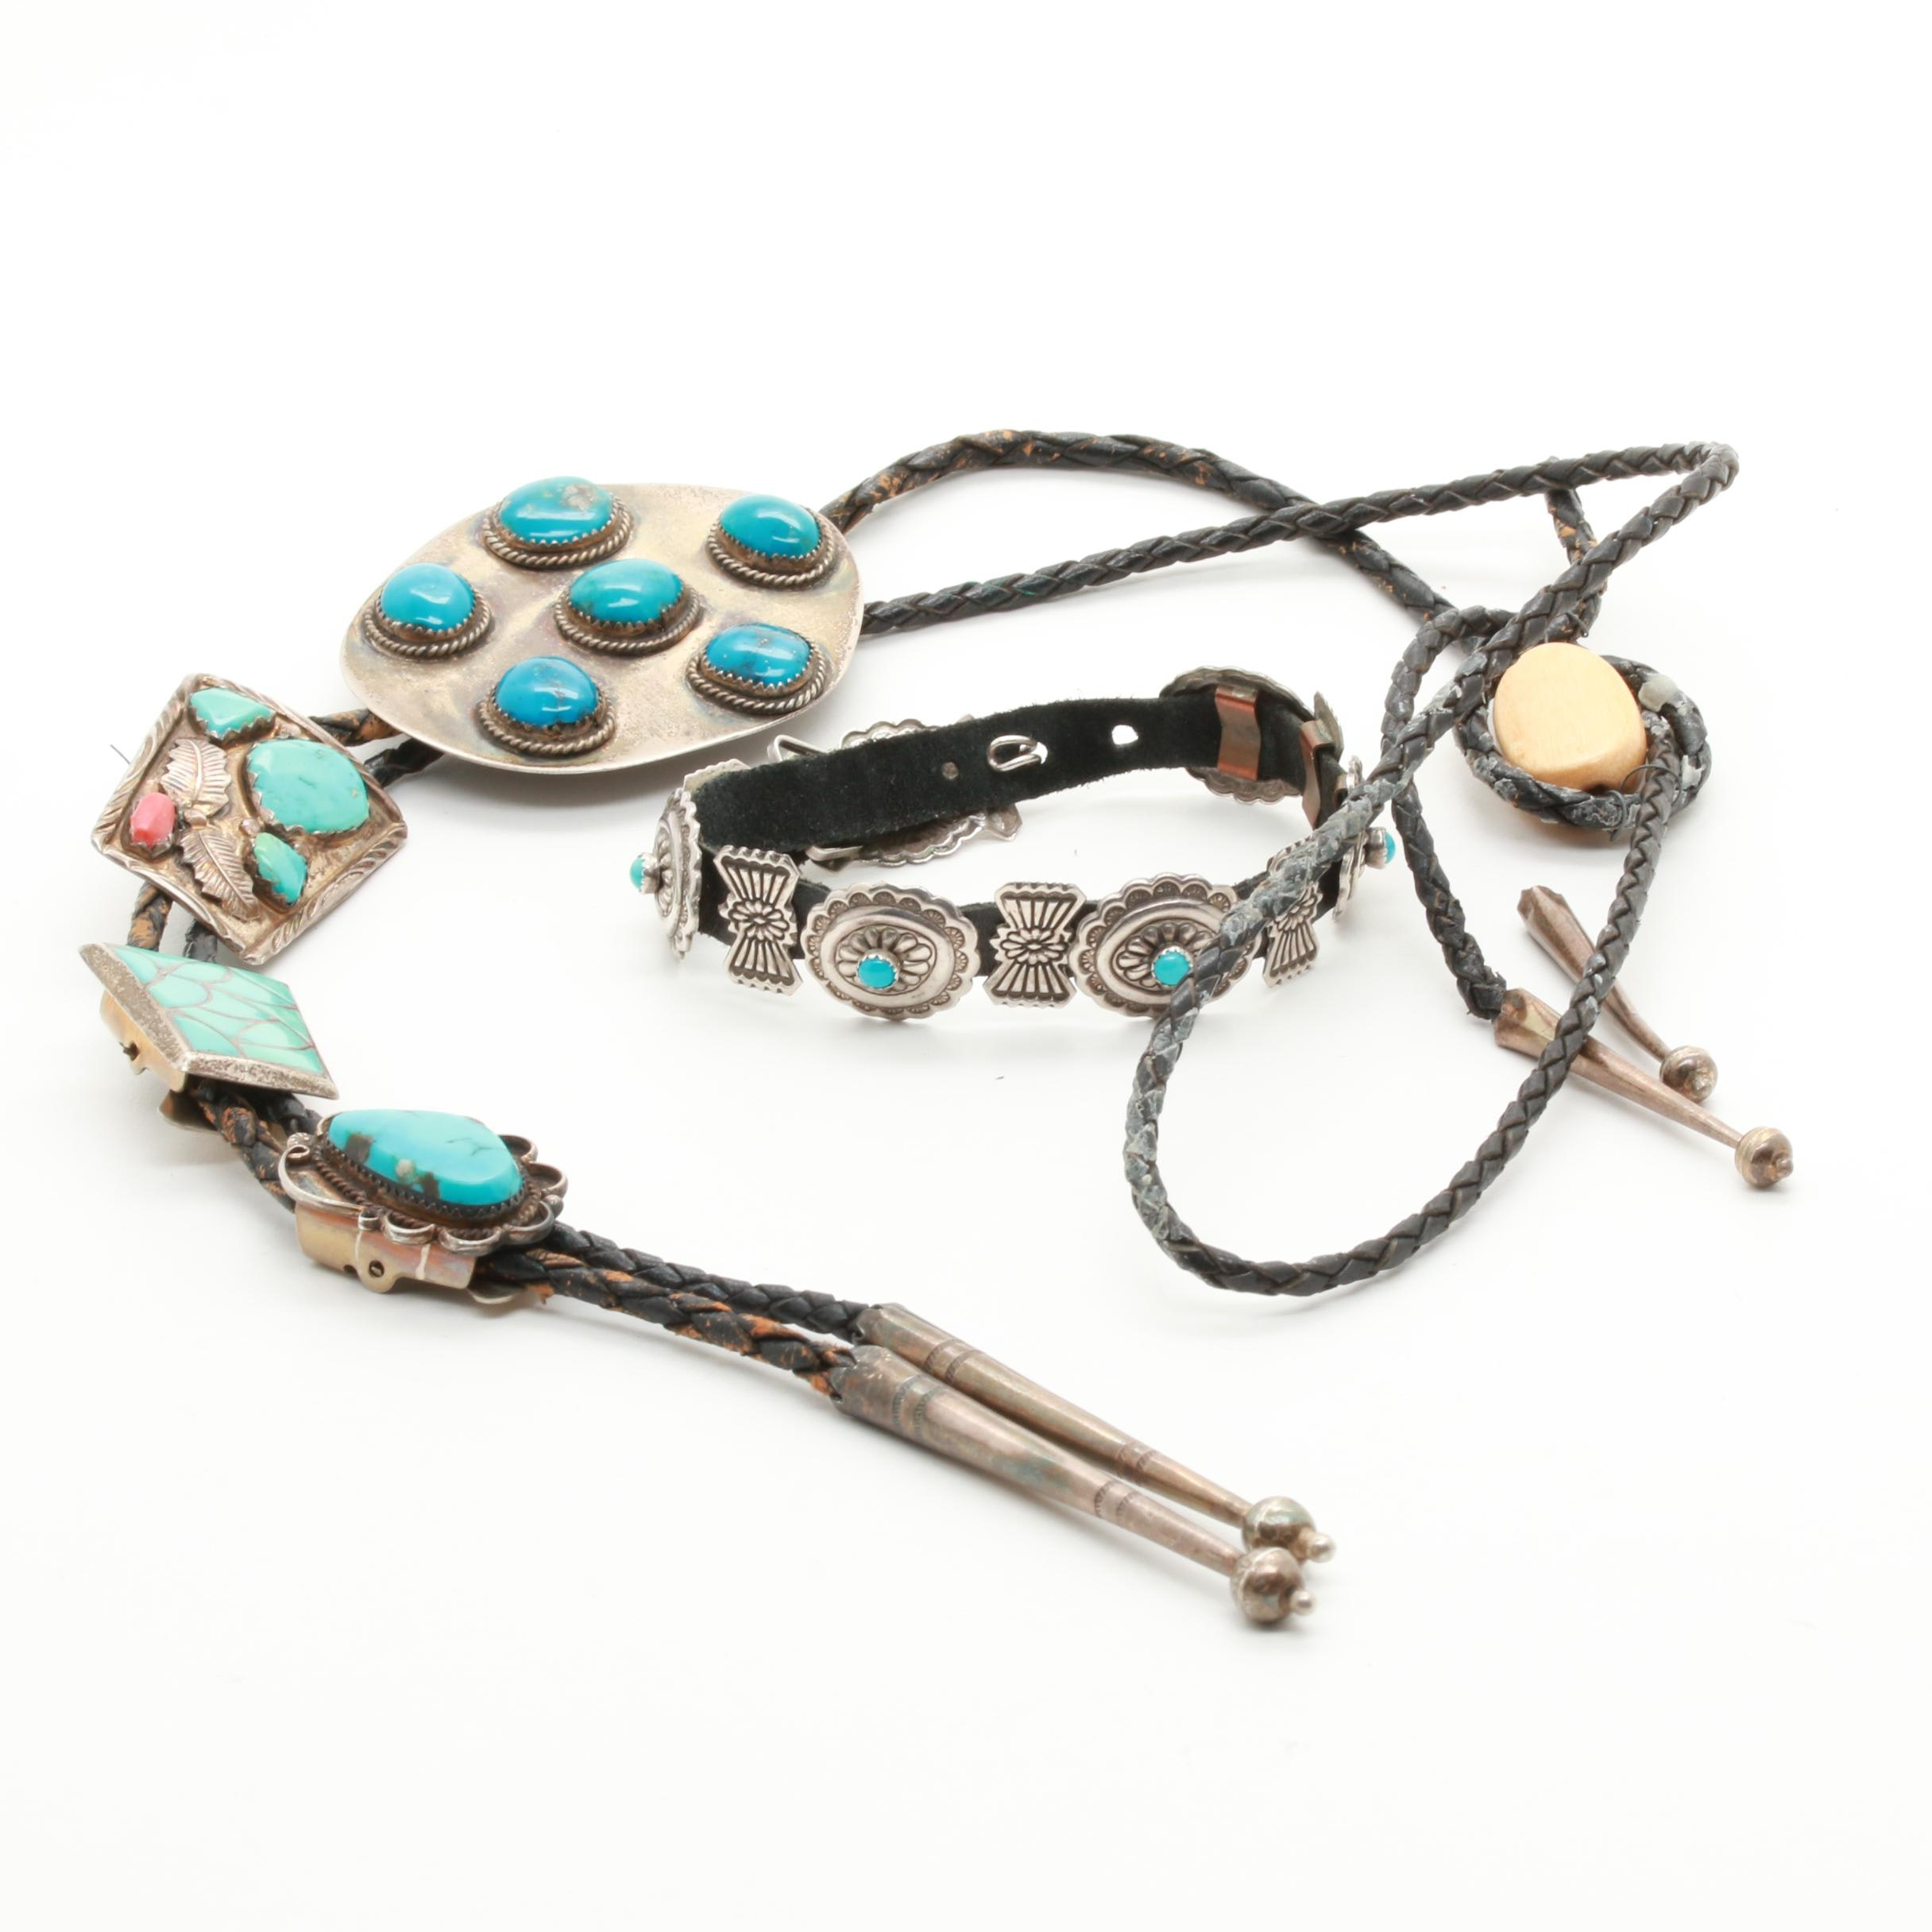 Southwestern Style Sterling Silver and Base Metal Jewelry Including Turquoise